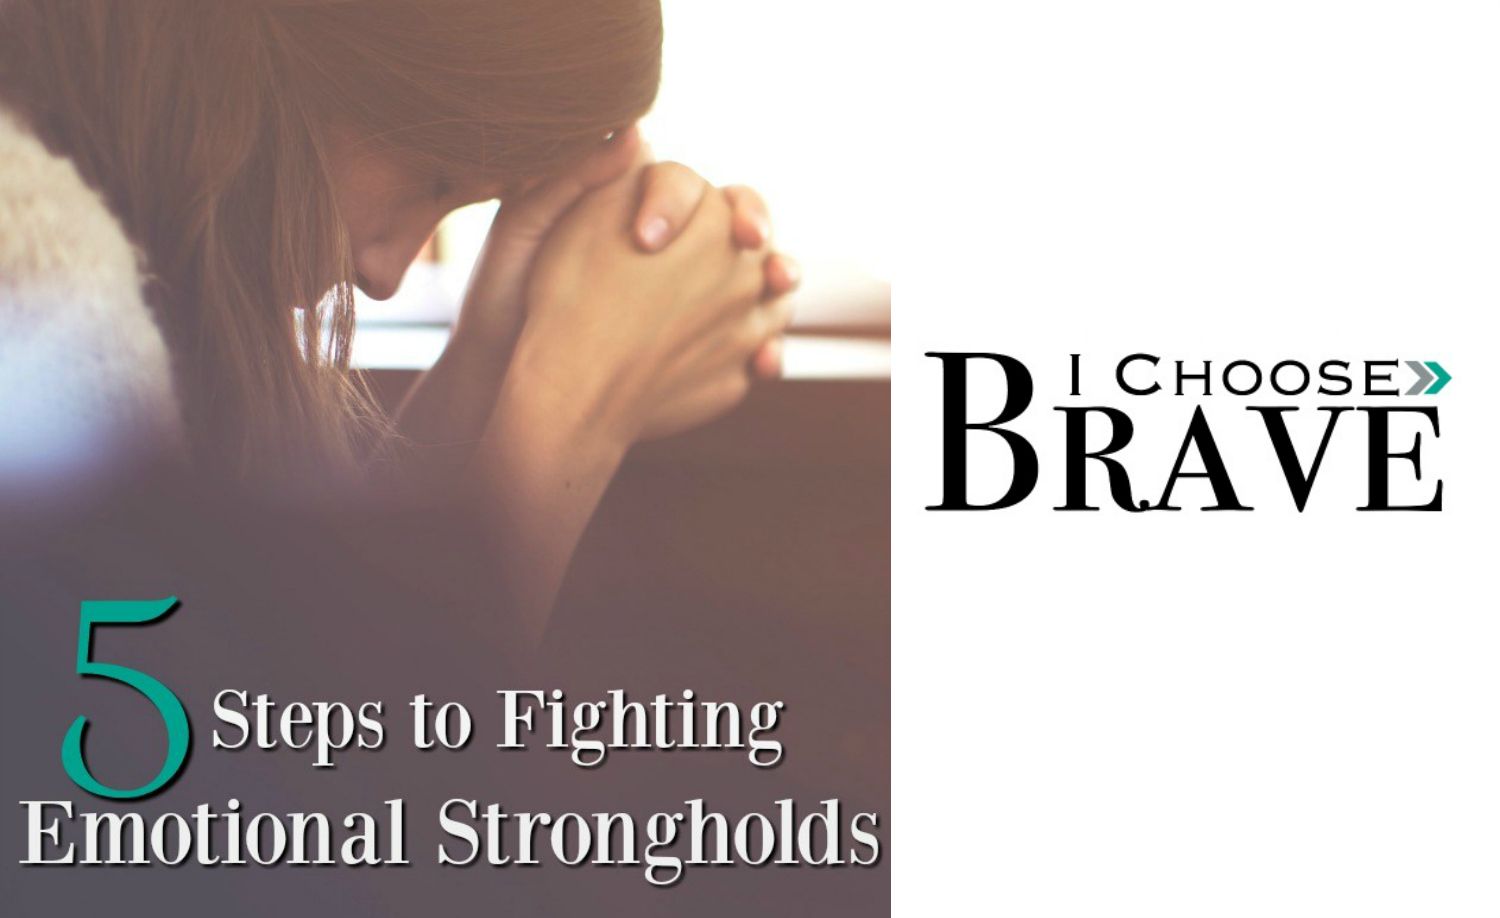 5 Steps to Fighting Emotional Strongholds | Christine M. Chappell